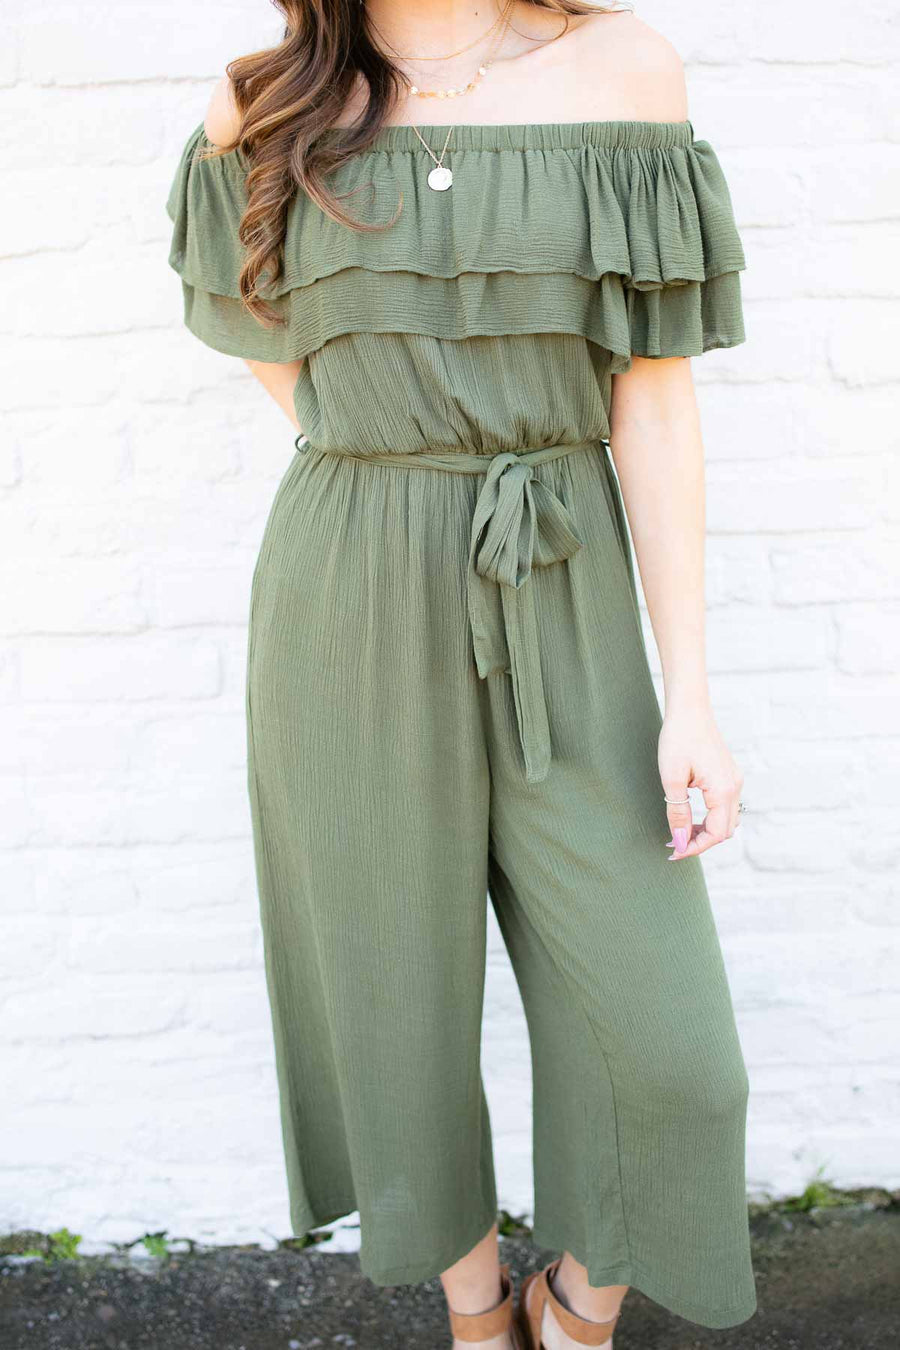 b1829f921996 Off Shoulder Olive Romper with Ruffle Detail